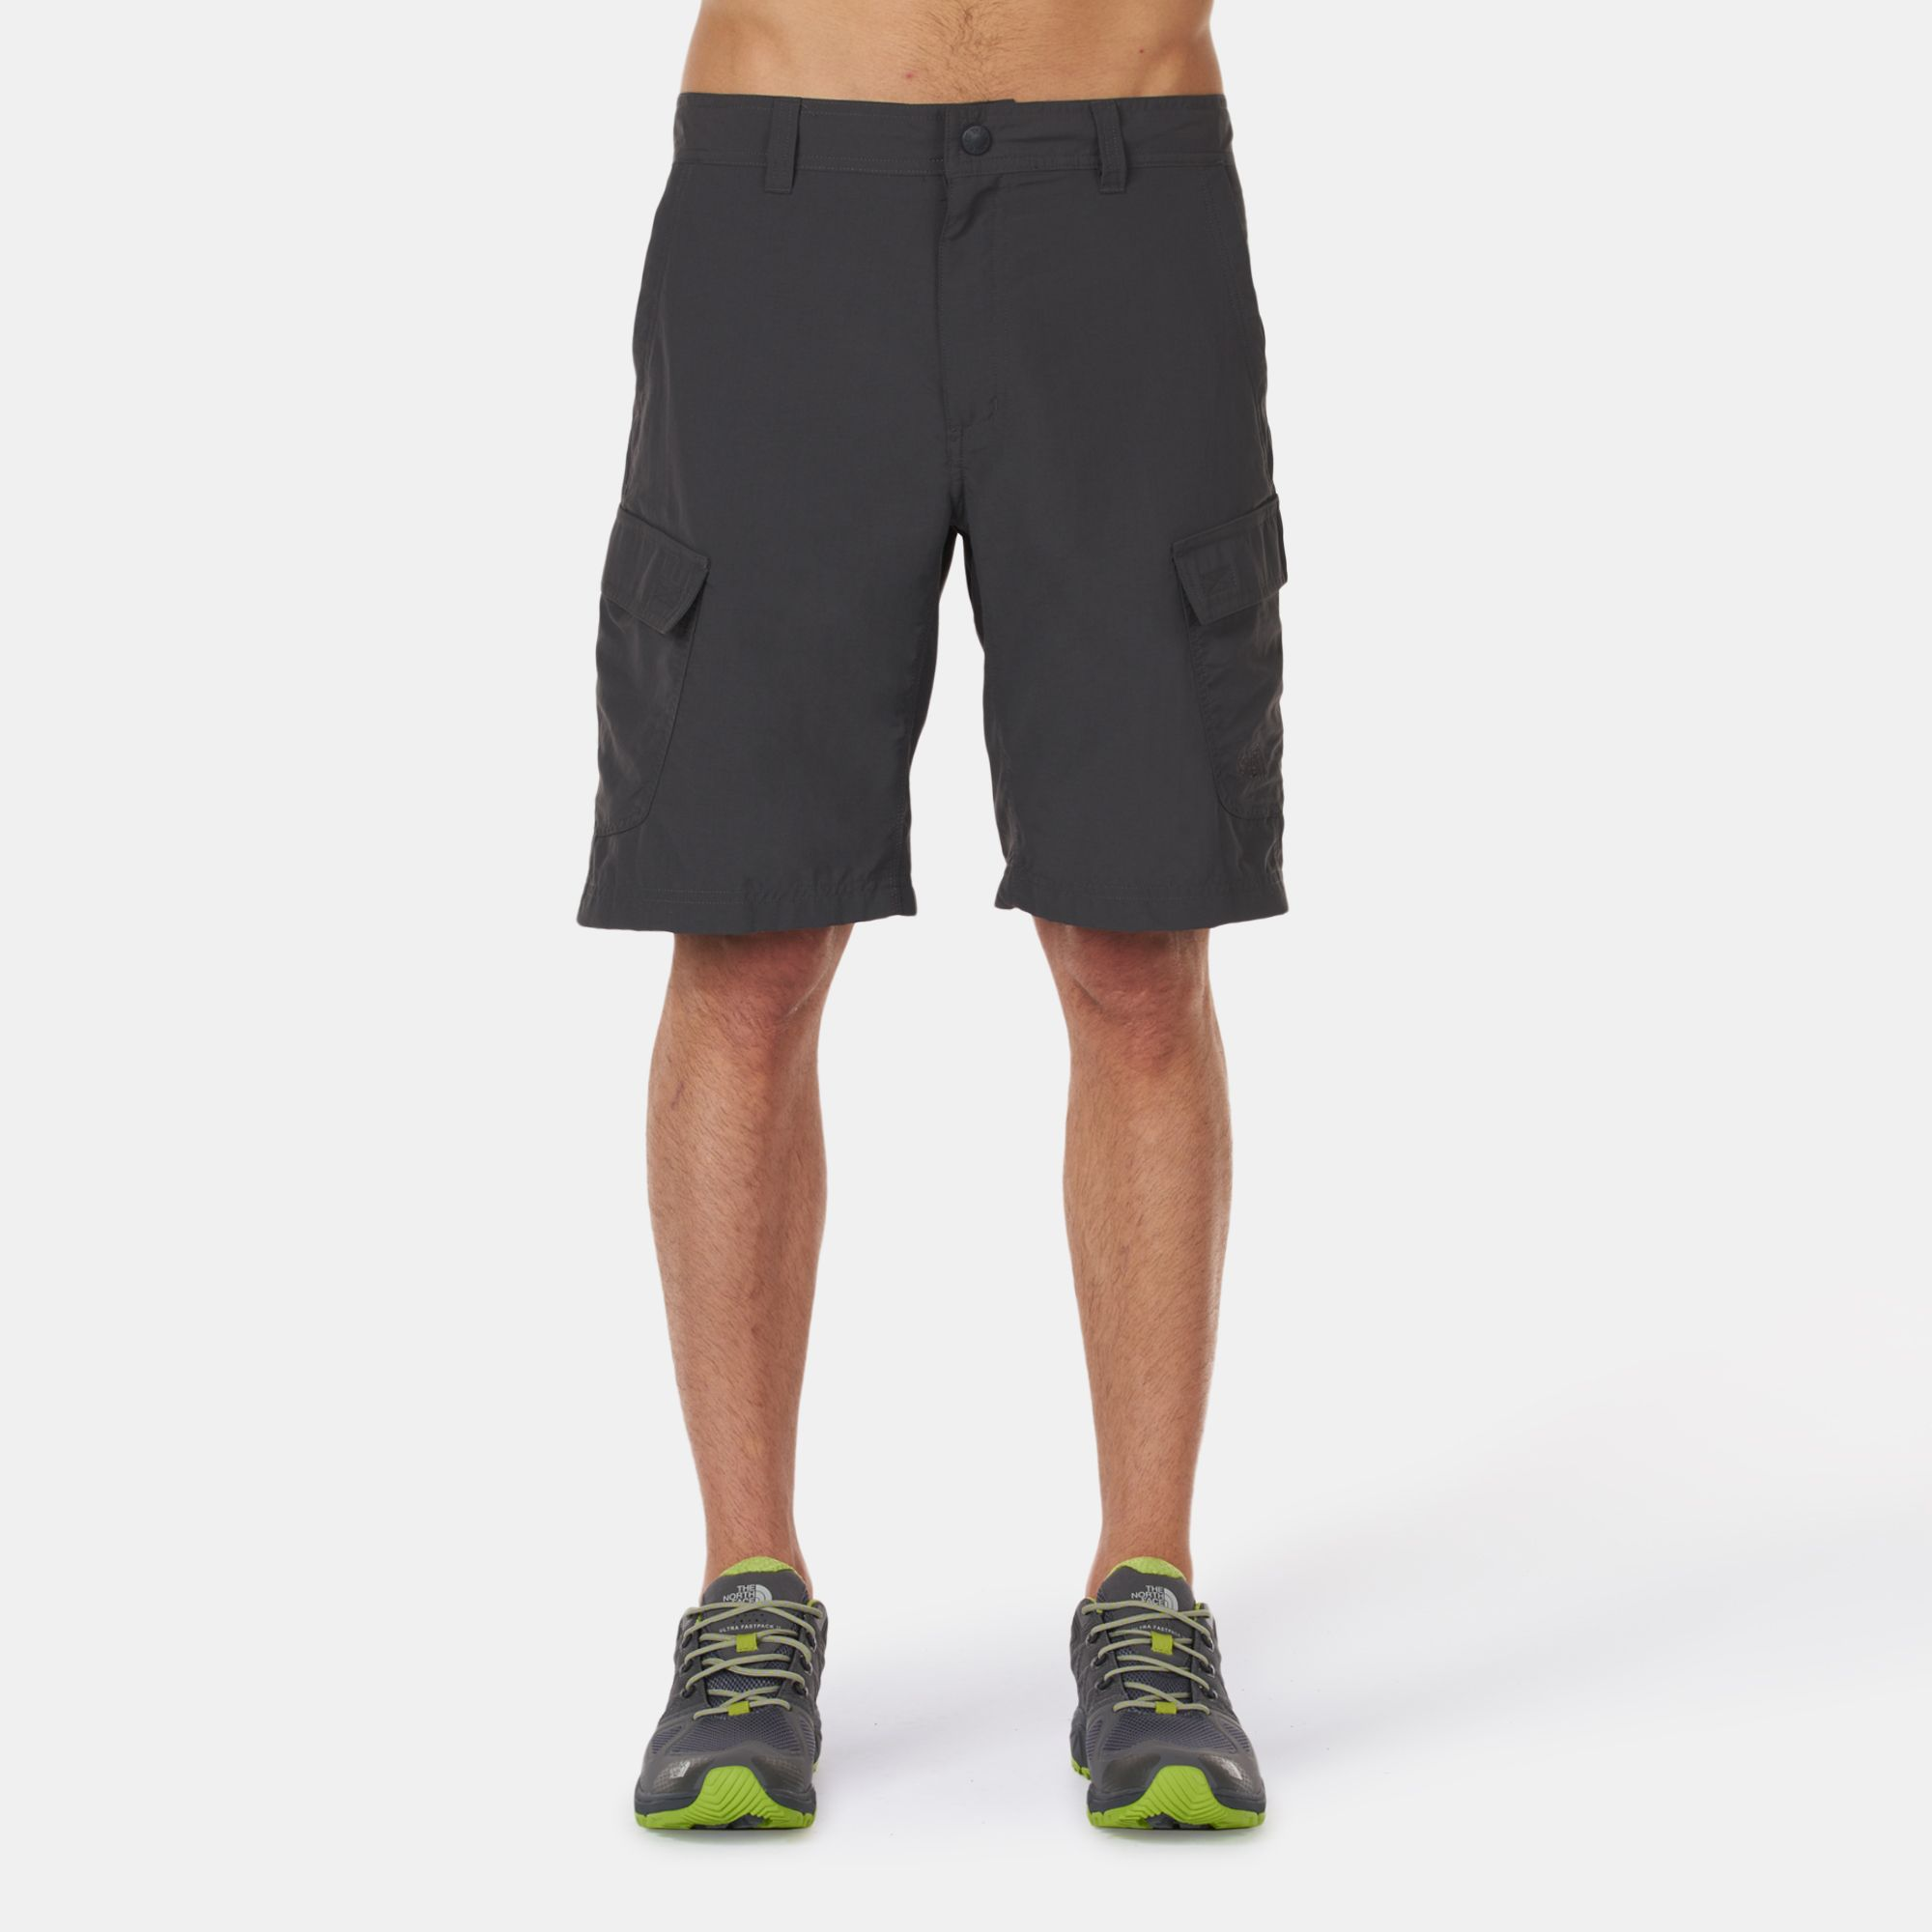 35b93e92c7 Shop Grey The North Face Horizon Cargo Shorts for Mens by The North ...